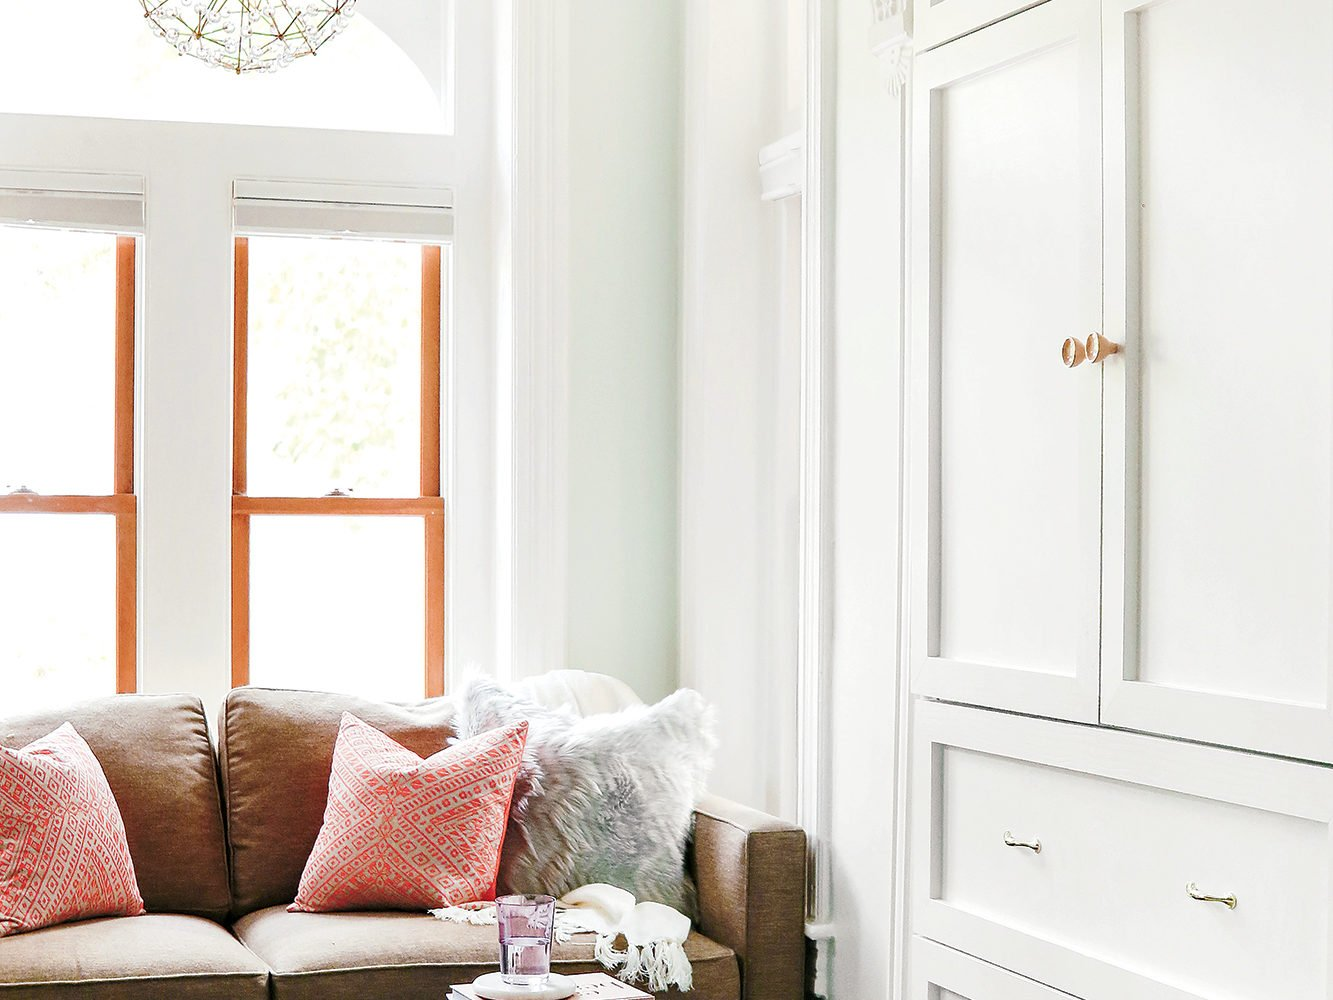 Mary Jo Major did away with the clutter that littered the old space by adding built-in storage to the window alcove.